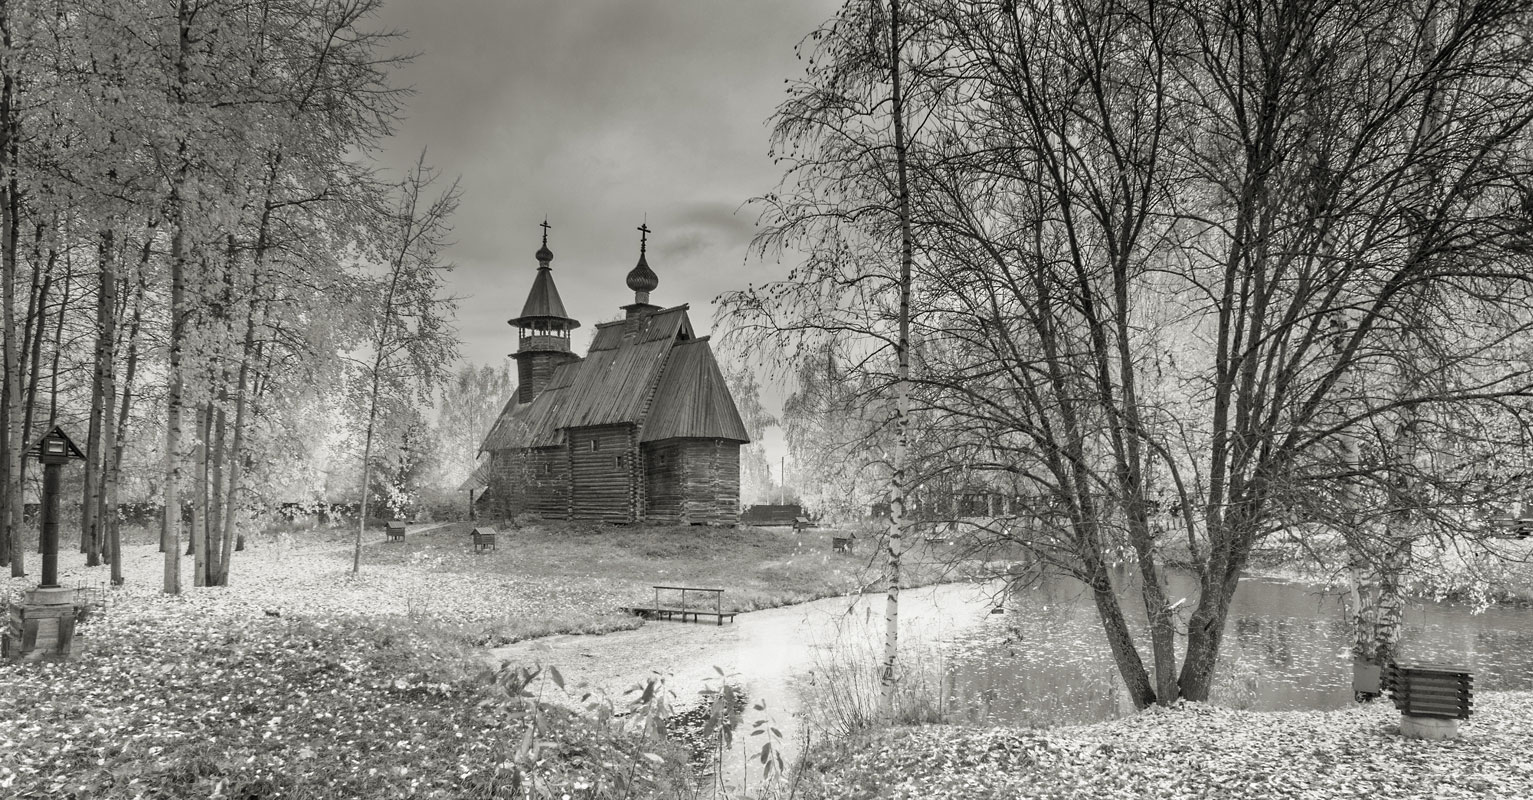 Kostroma, © Yuri Pritisk, Russia, Filter: Half ND, Cityscape Photography x Filter Photo Contest - Marumi